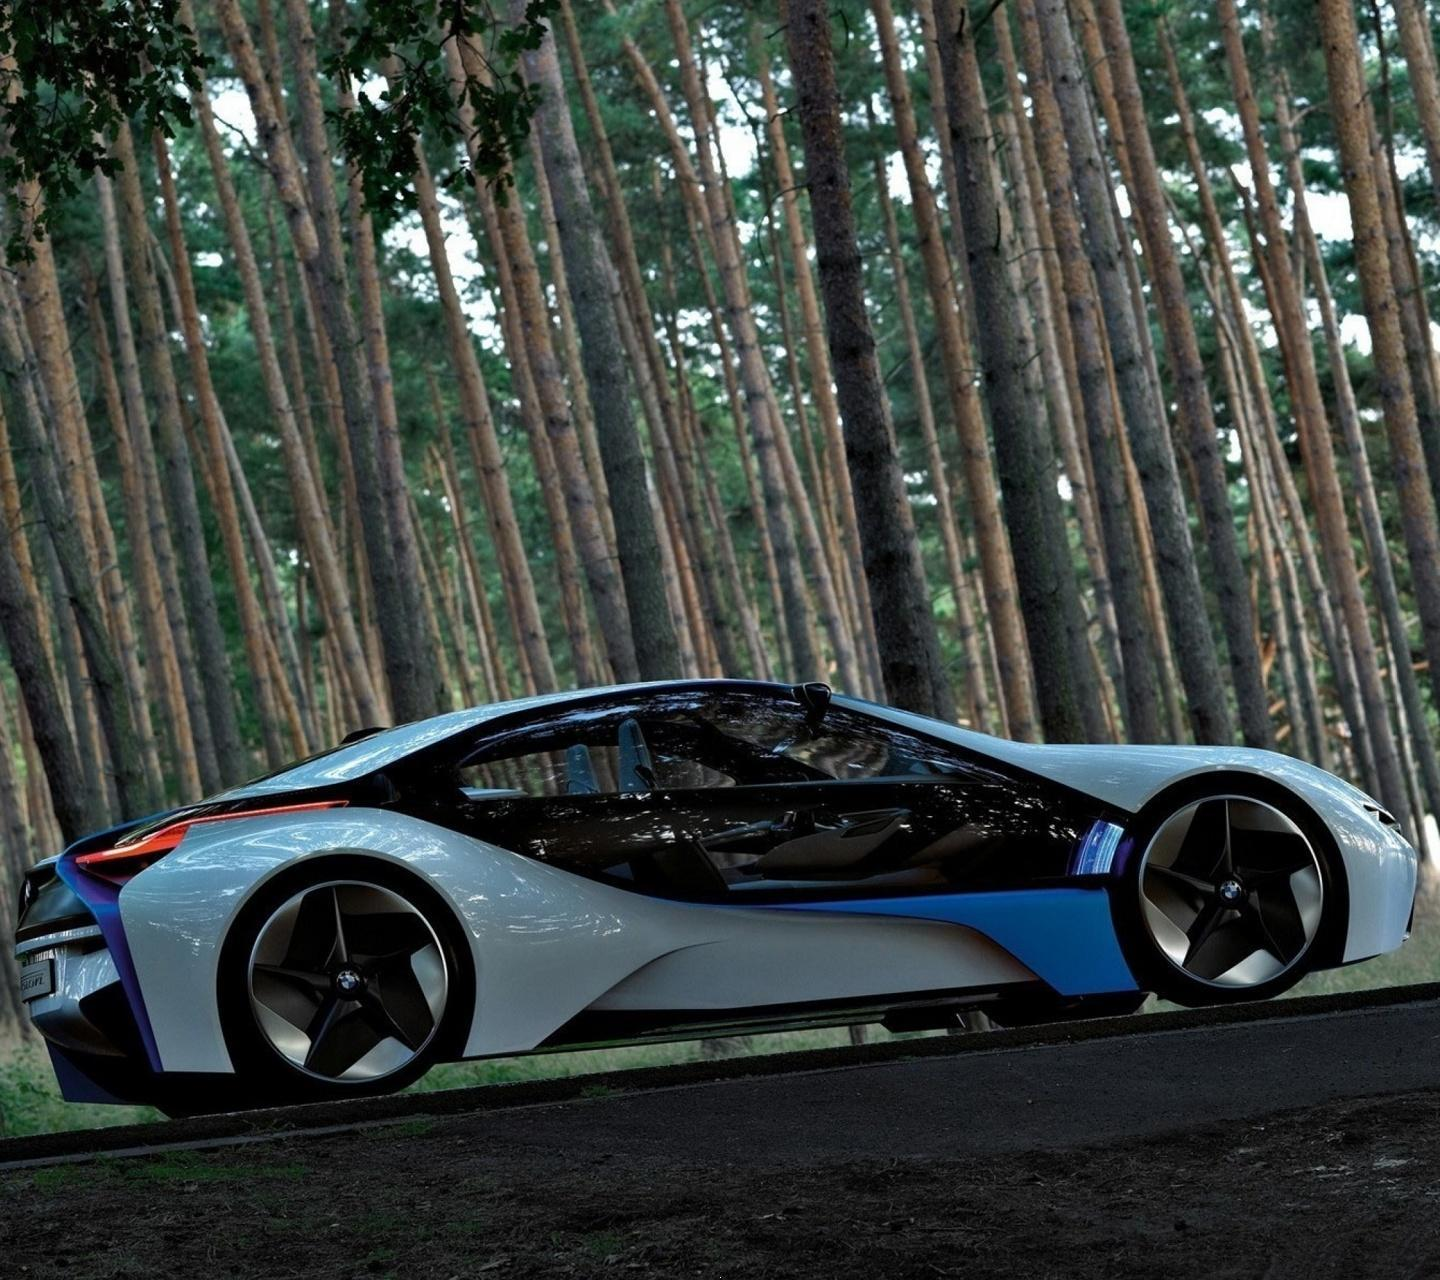 Download Bmw Car Cars Wallpapers For Your Mobile Cell Phone